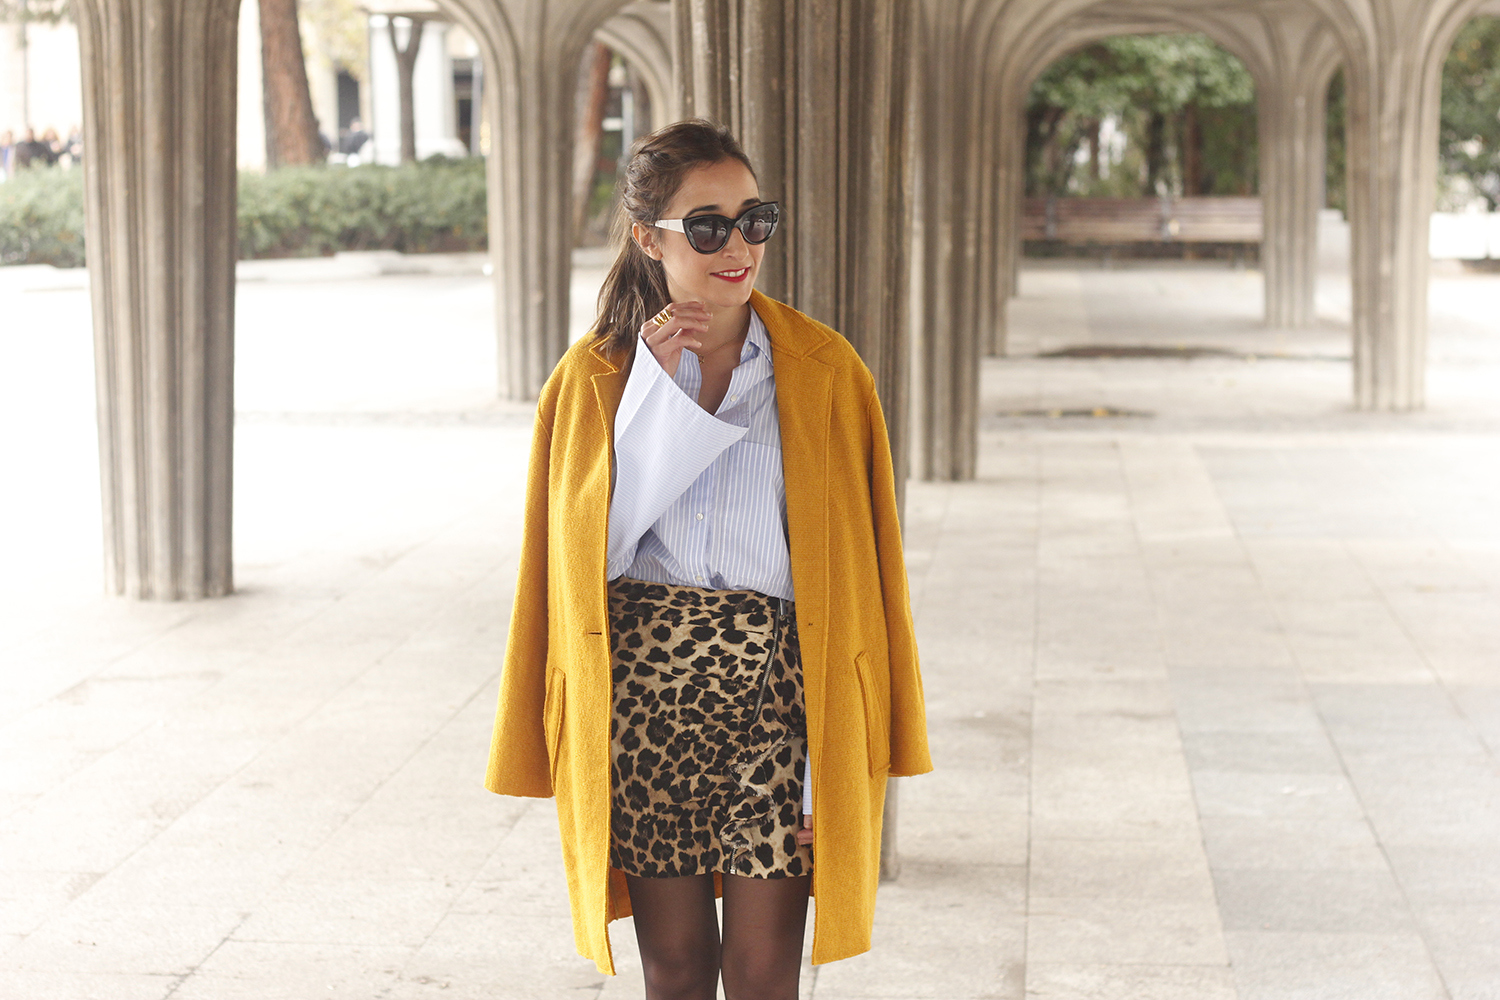 Leopard Skirt striped shirt black heels mustard coat fall outfit style fashion06